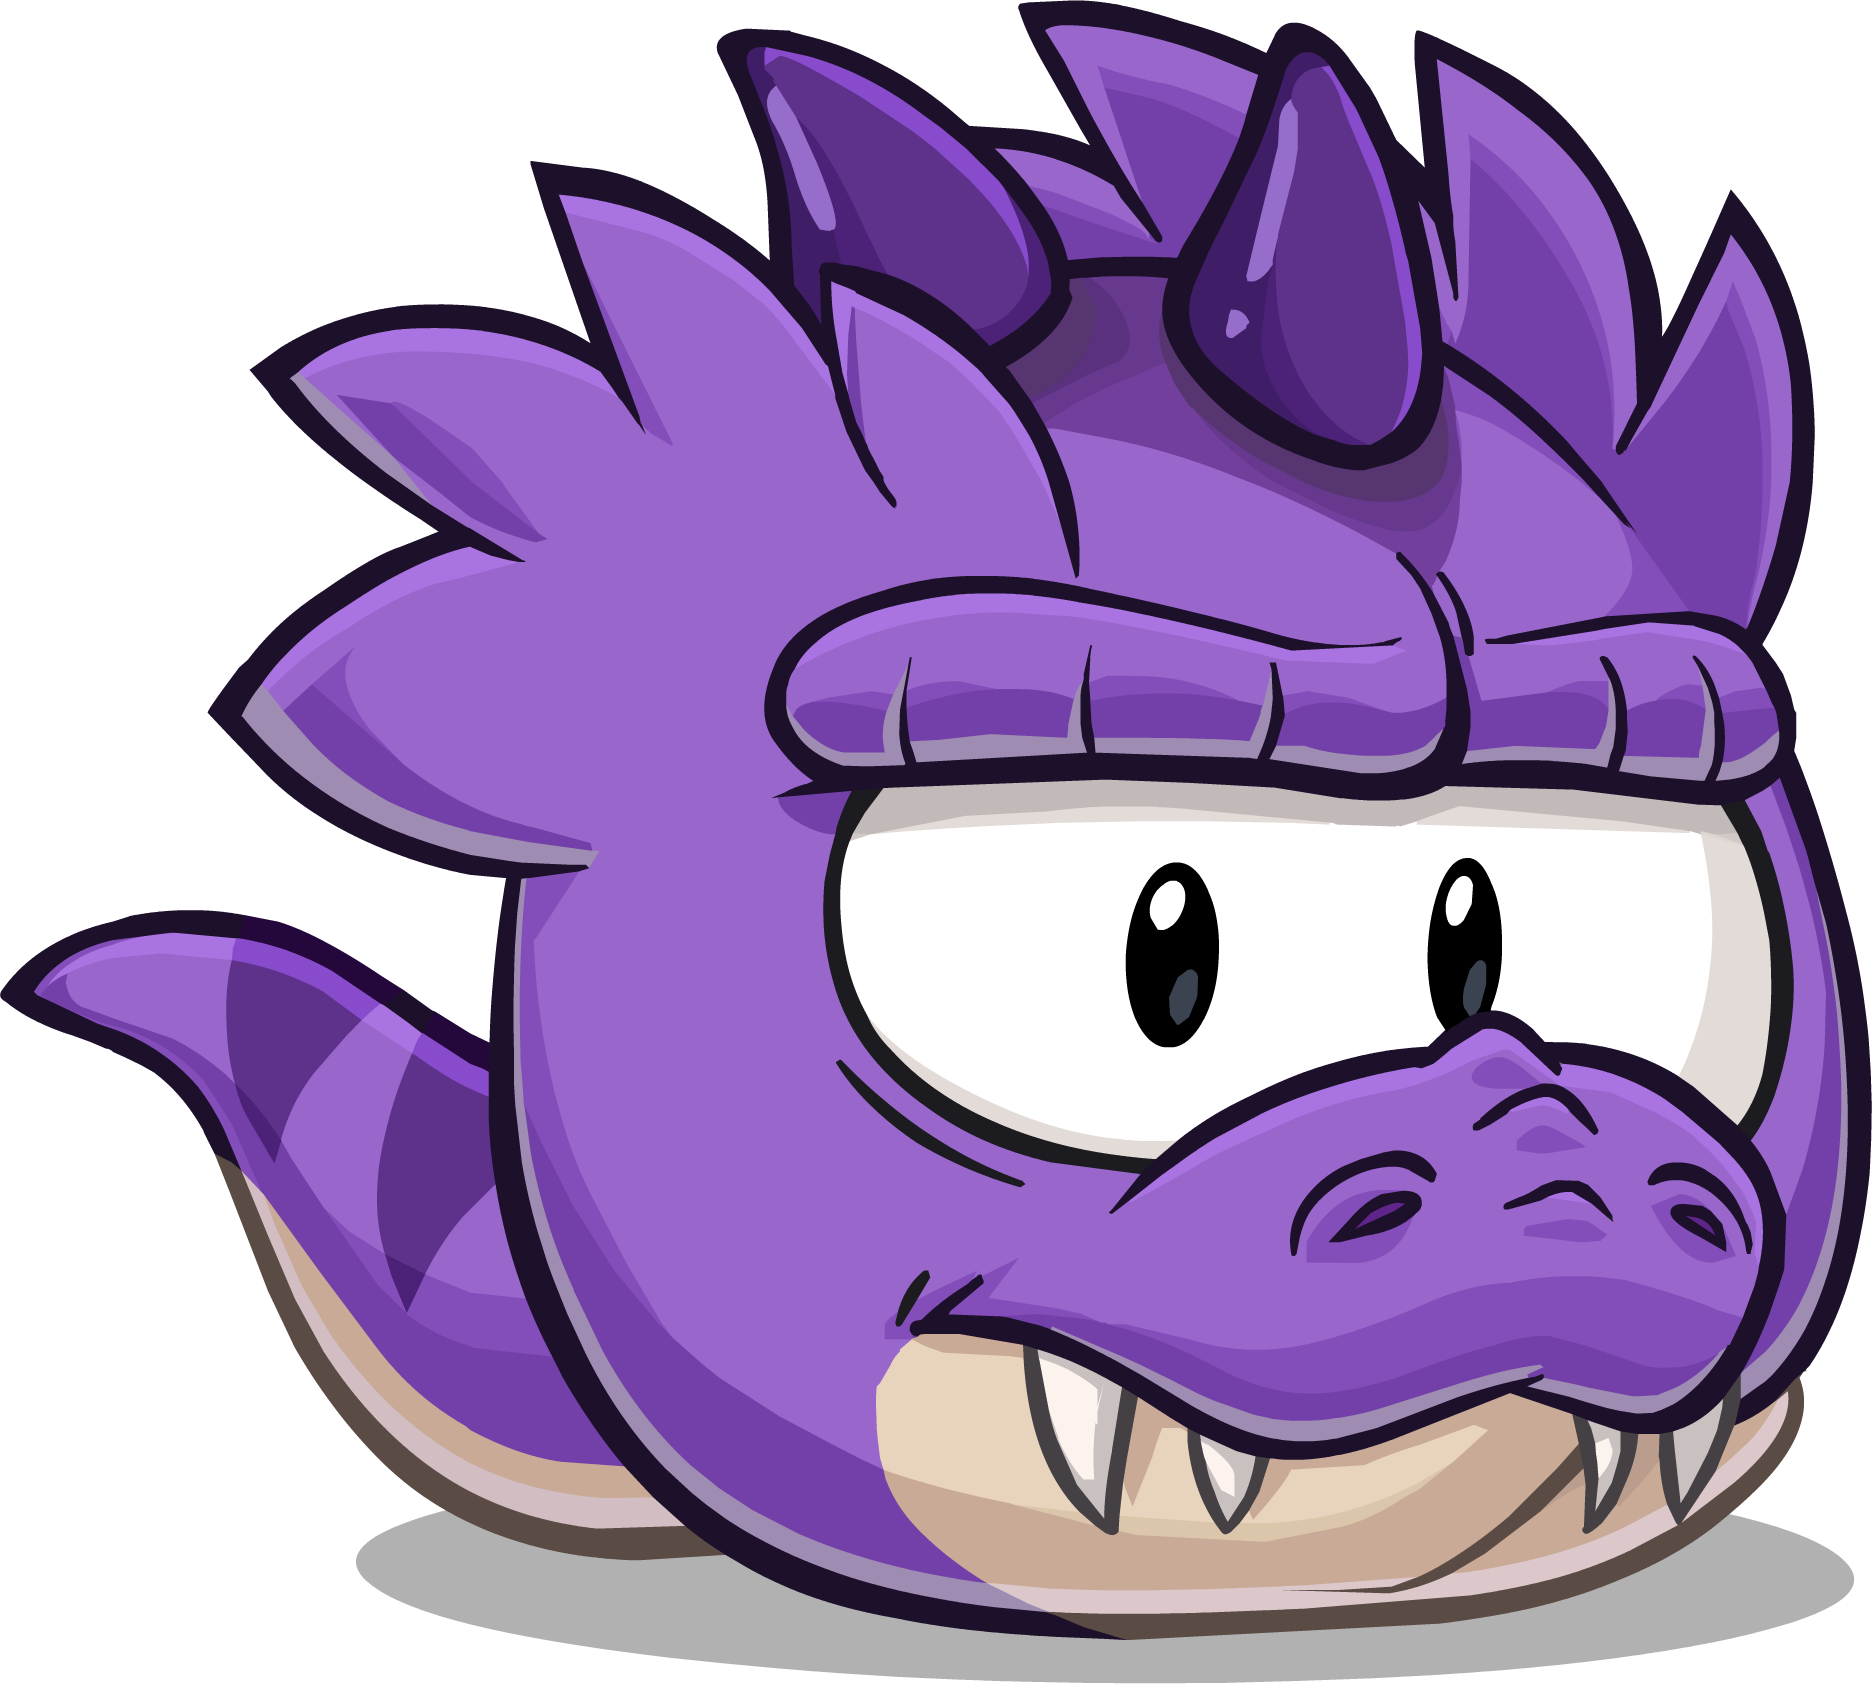 Imagen - PurpleTRexPuffle.png | Club Penguin Wiki | FANDOM powered ...